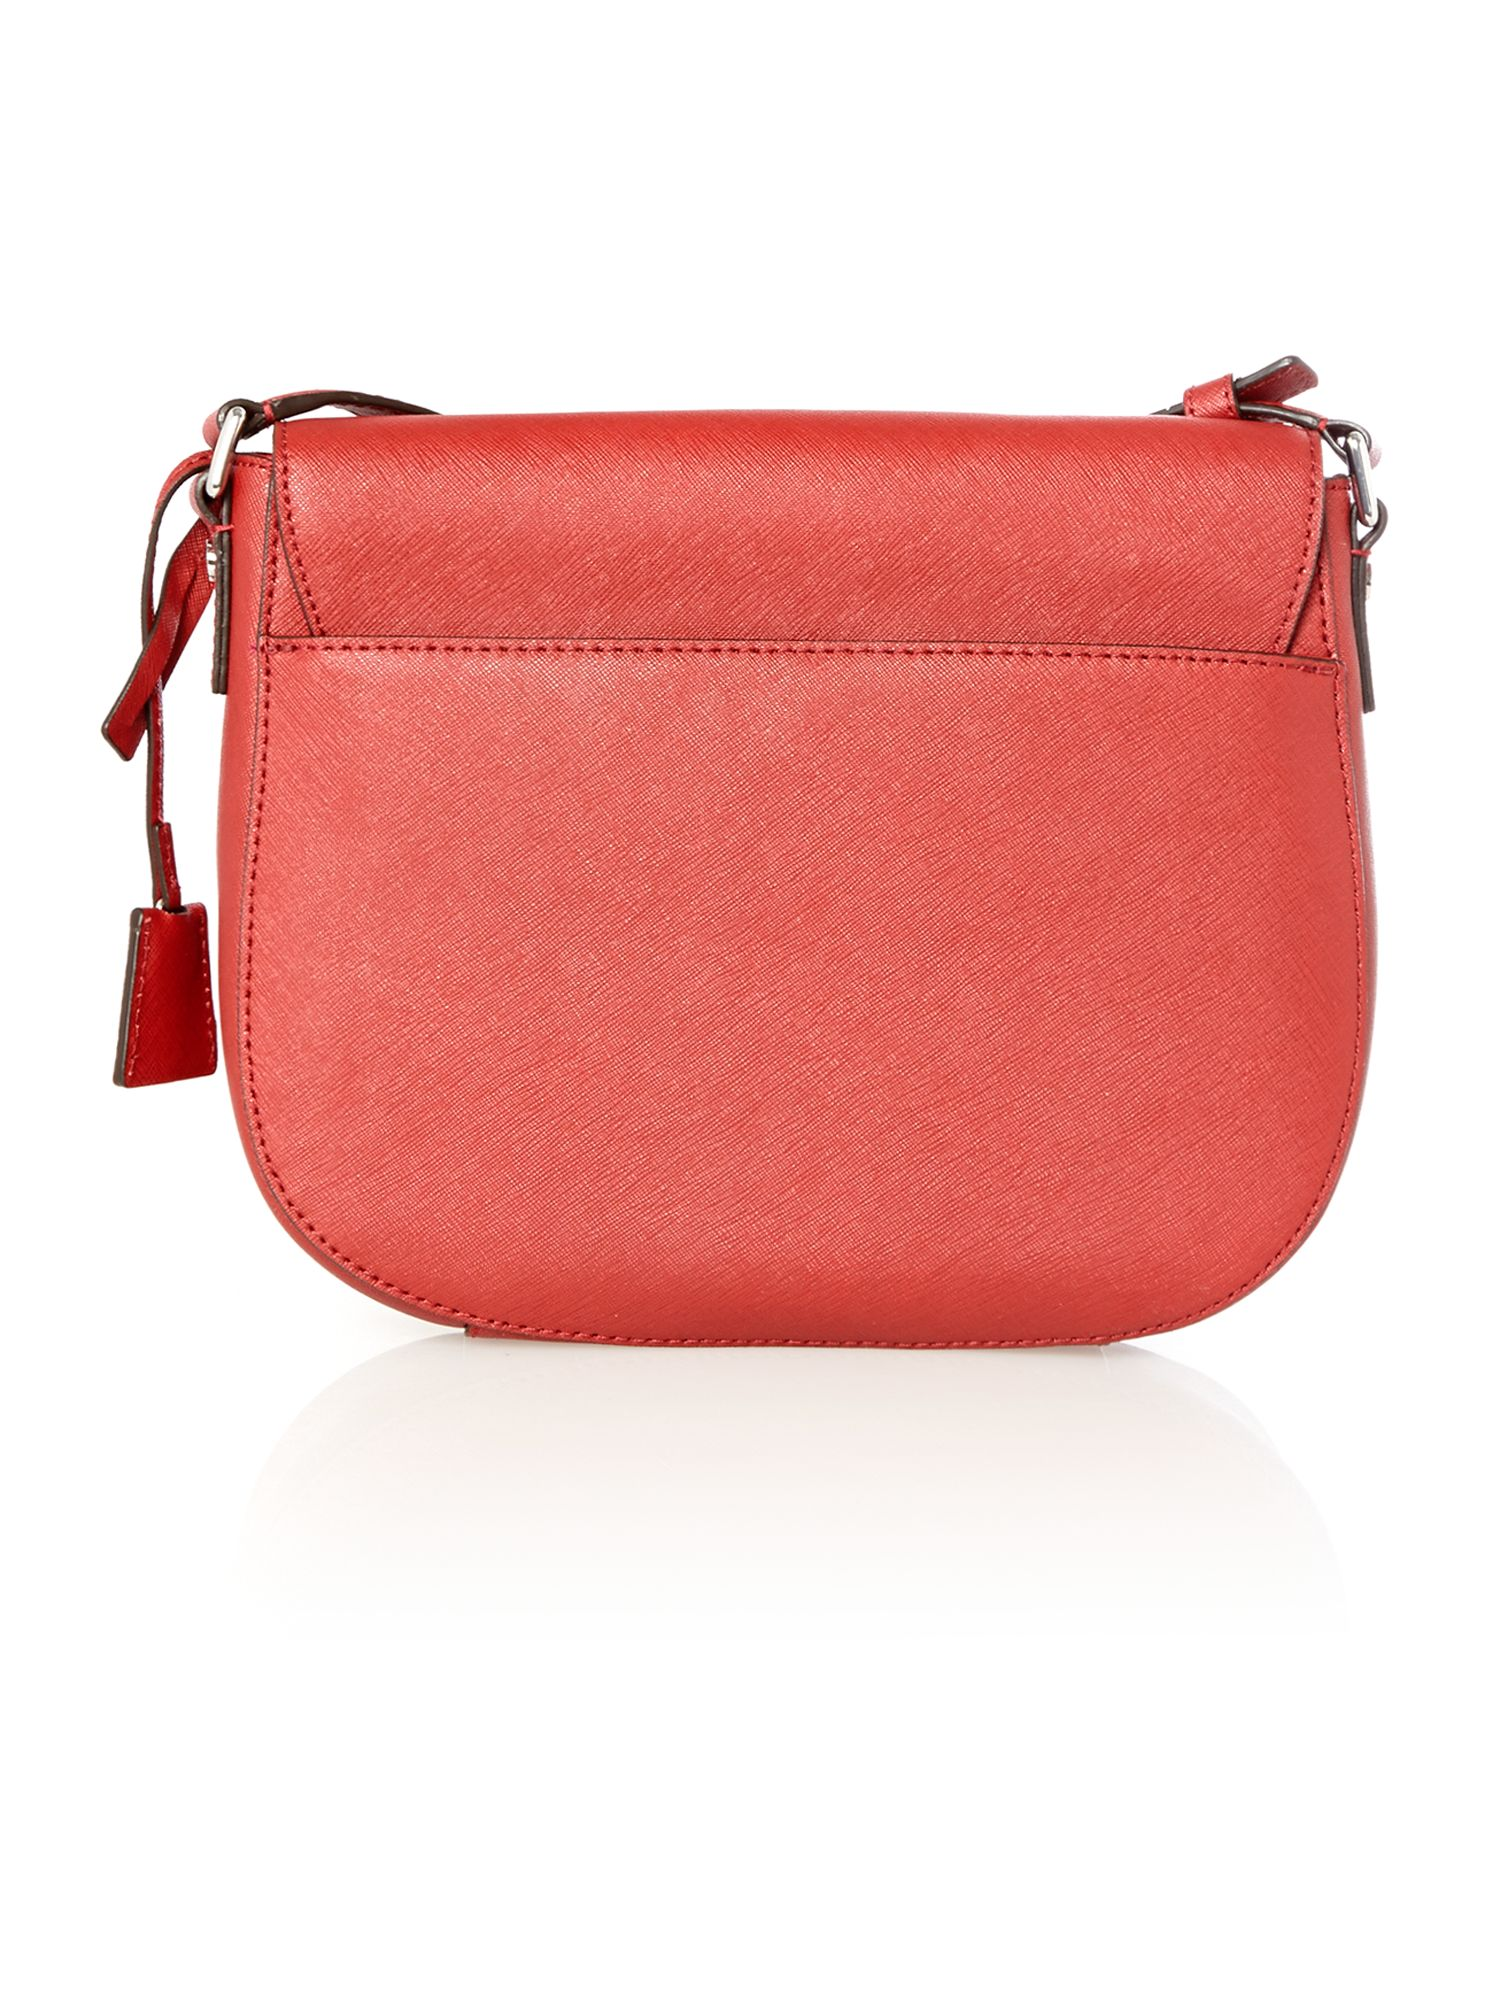 Hamiltin red flap over cross body bag